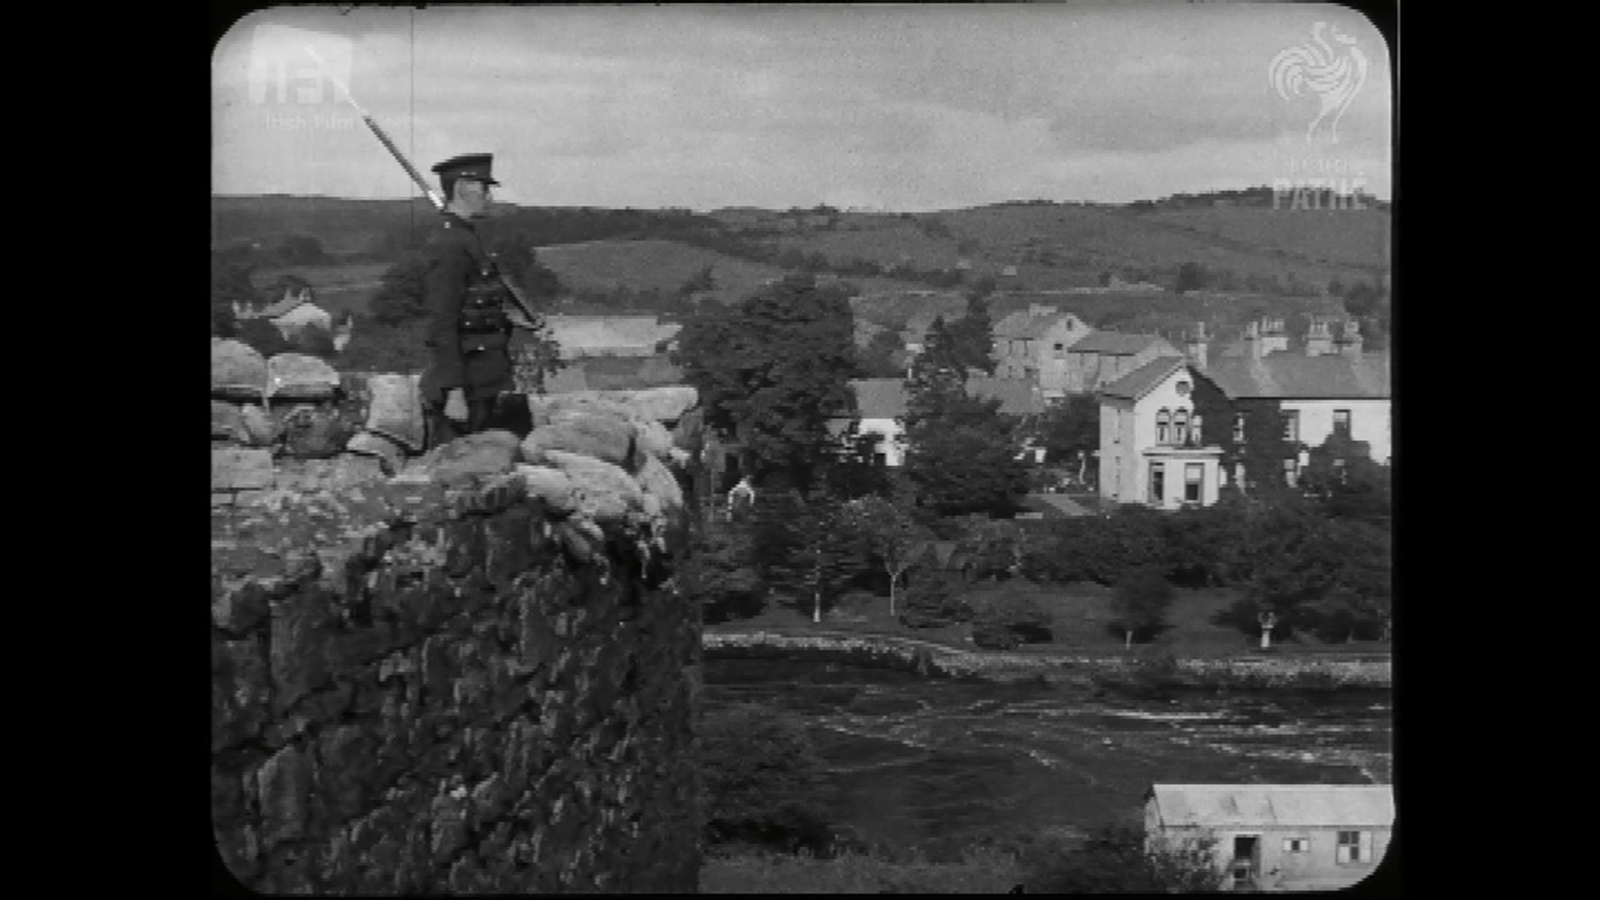 1924 footage shows first images of border